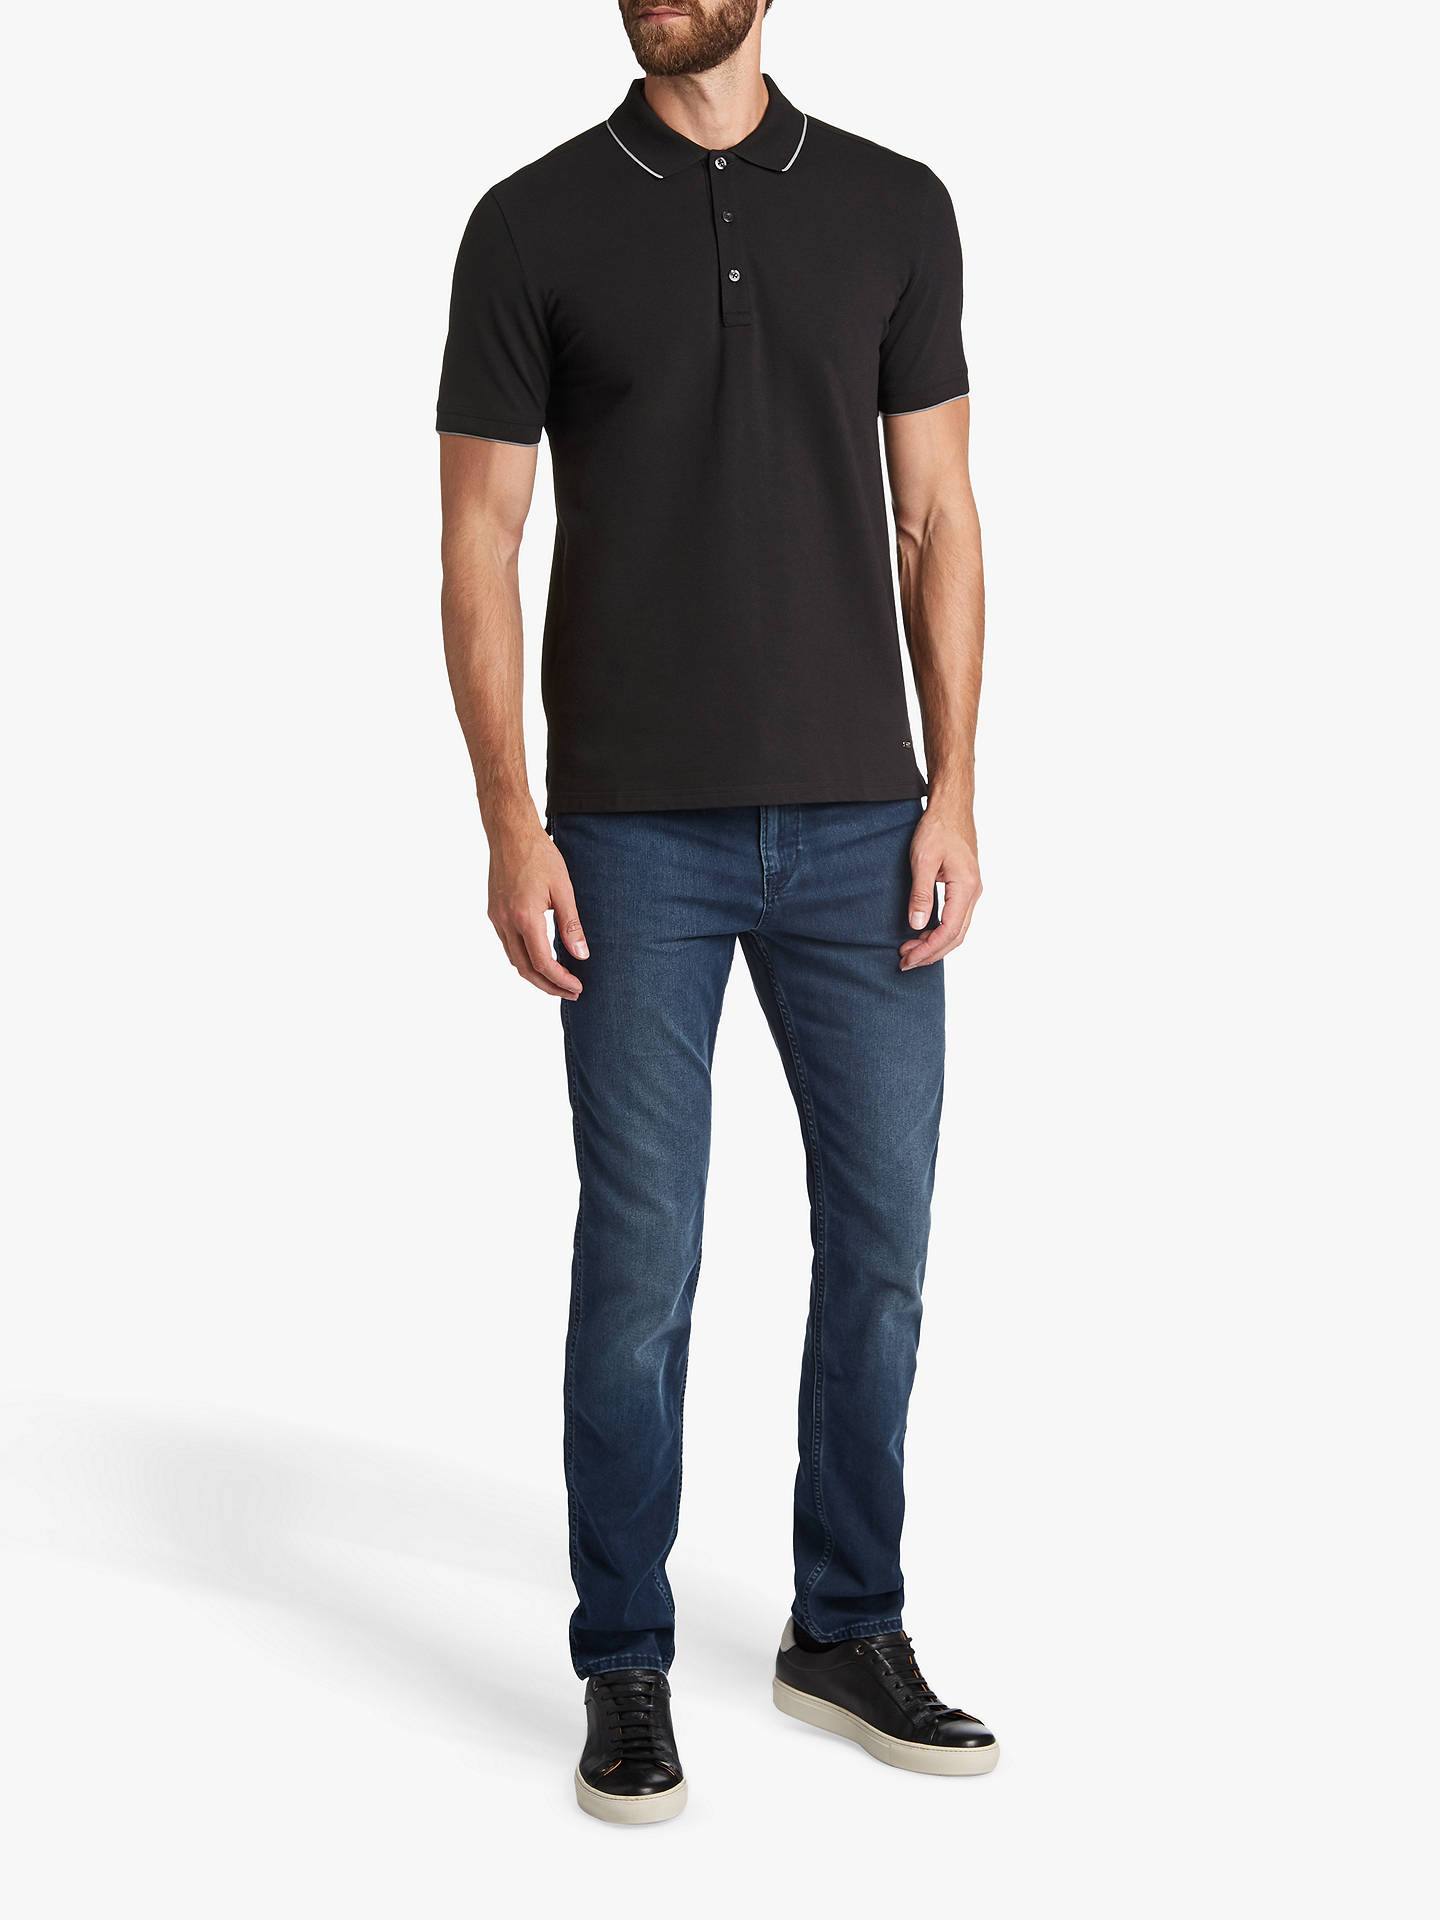 76b3c9c9c ... Buy HUGO by Hugo Boss Dinoso Contrast Tipping Polo Shirt, Black, S  Online at ...